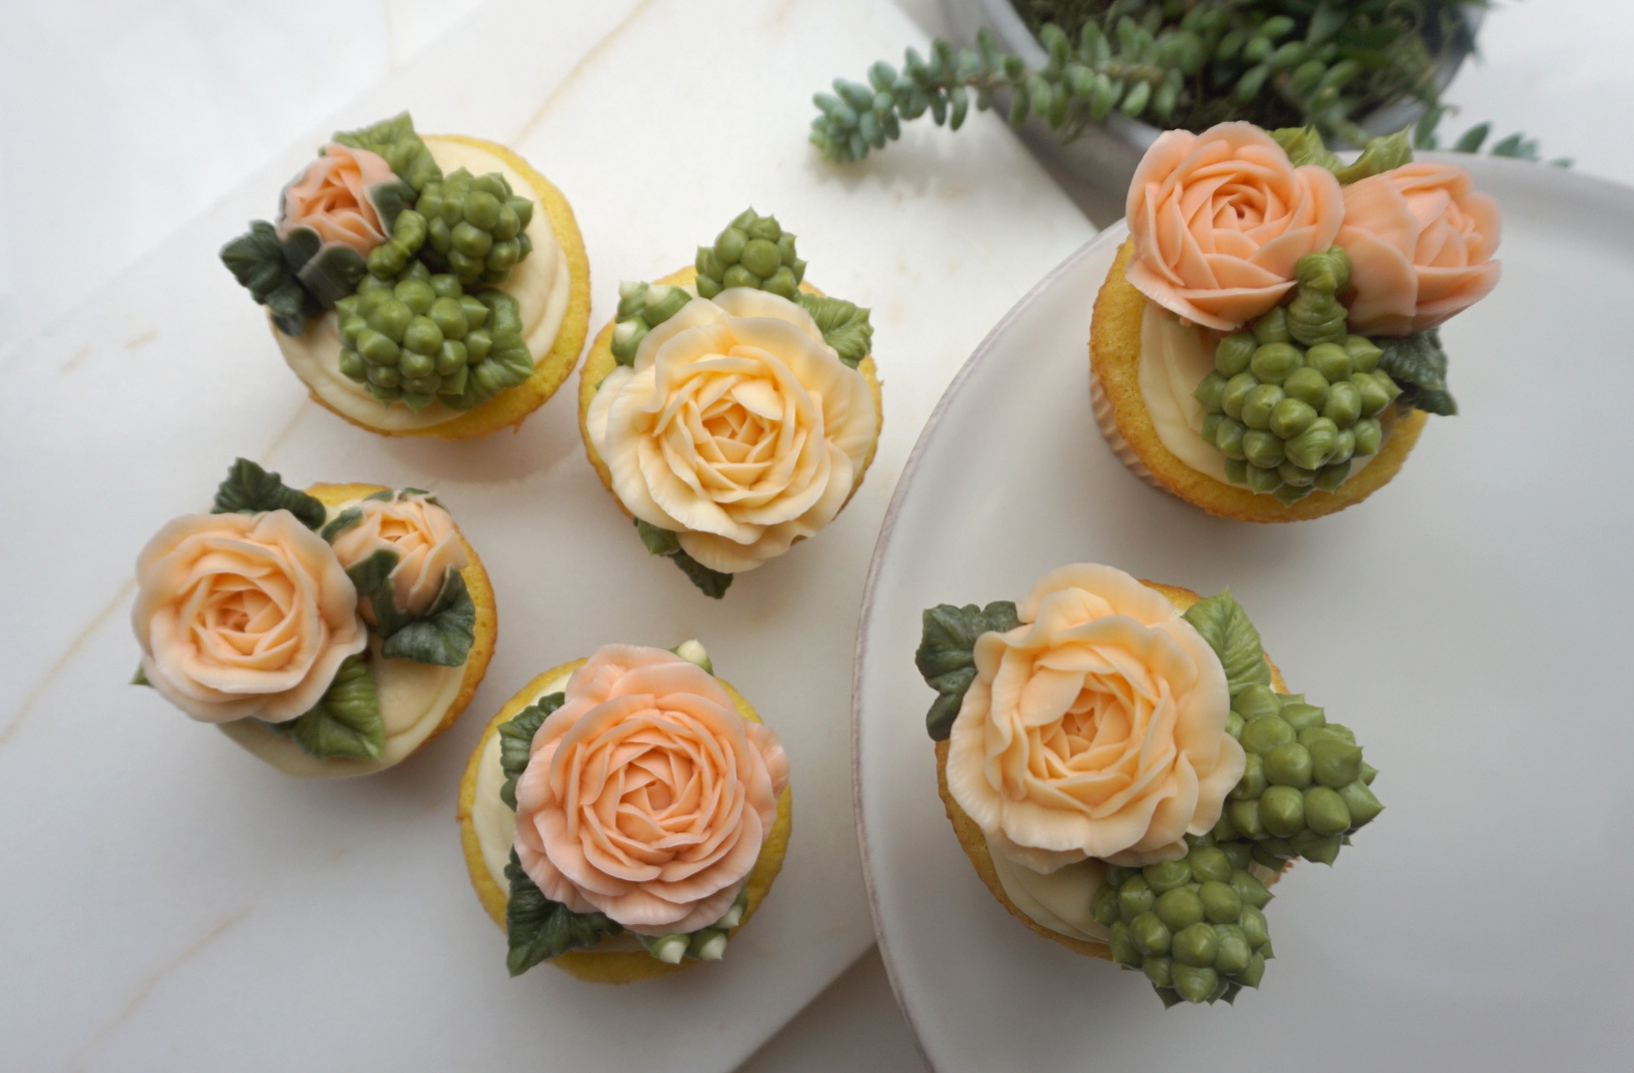 Botanic Buttercream Decorating Workshop in NYC: In New York, New York (1)